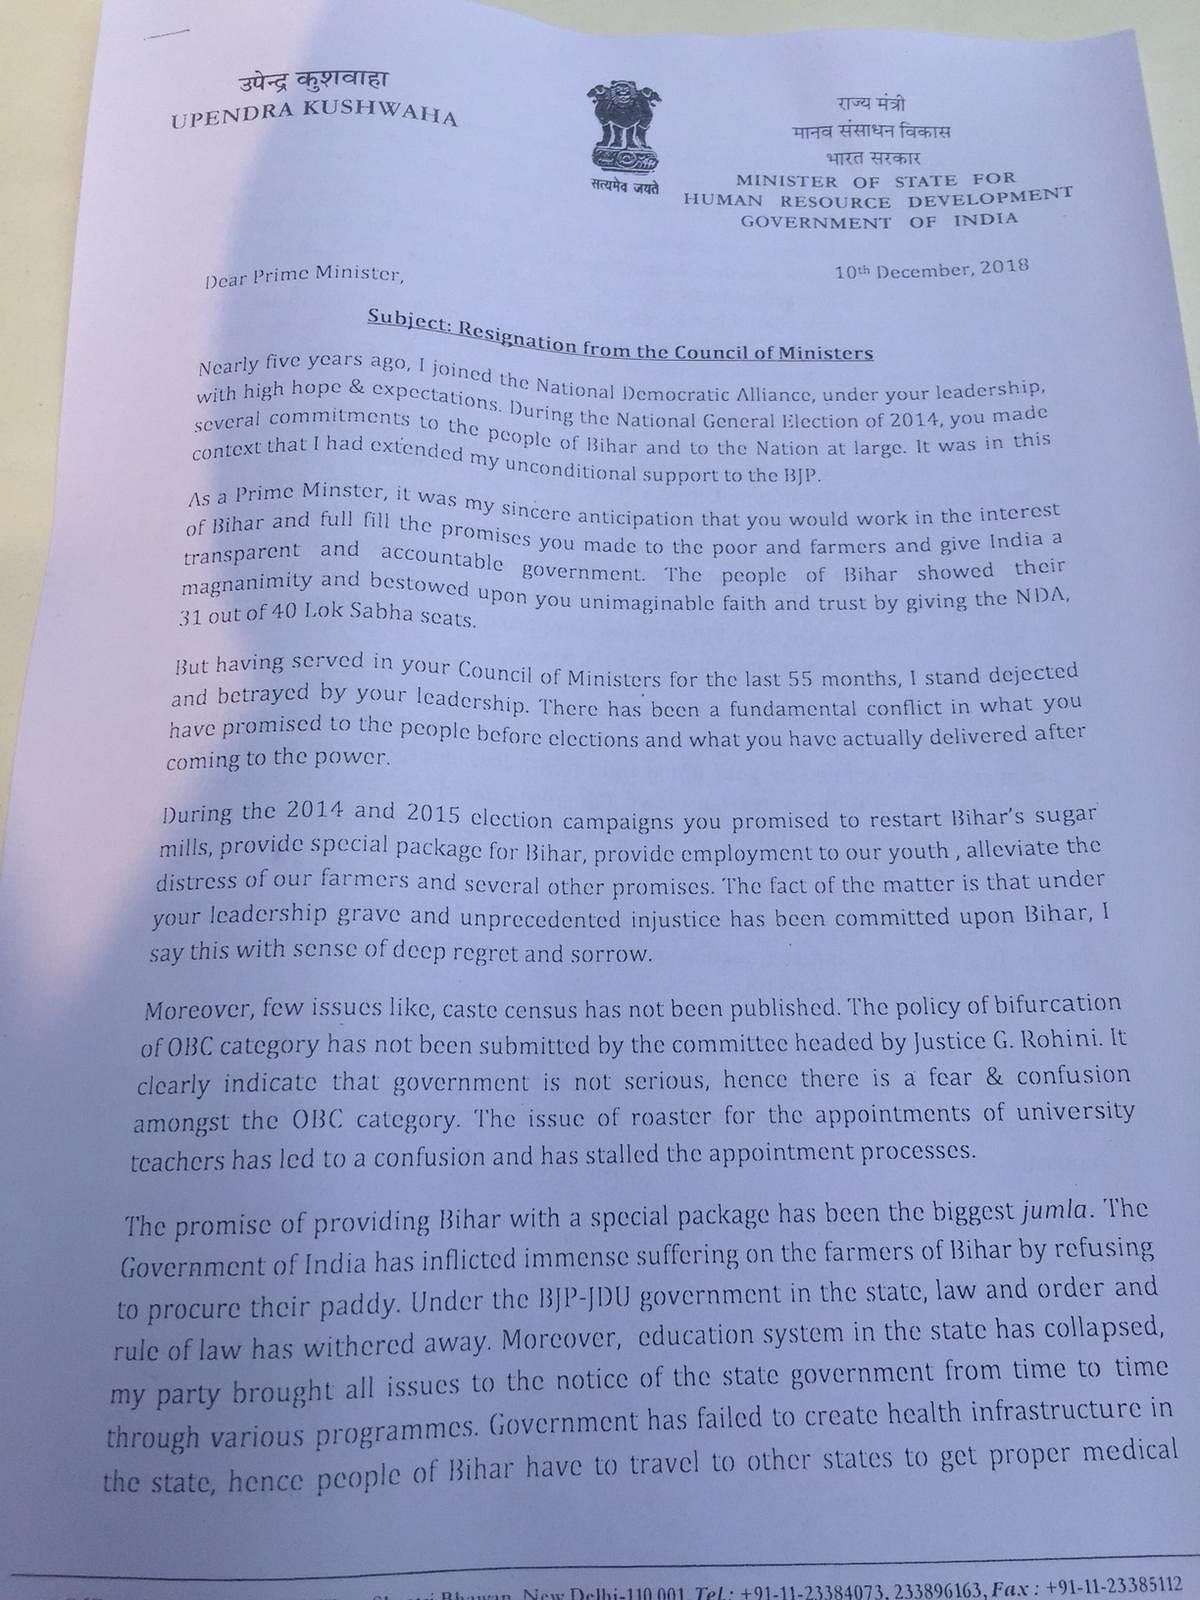 Kushwaha's resignation letter for resigning as a Union minister.